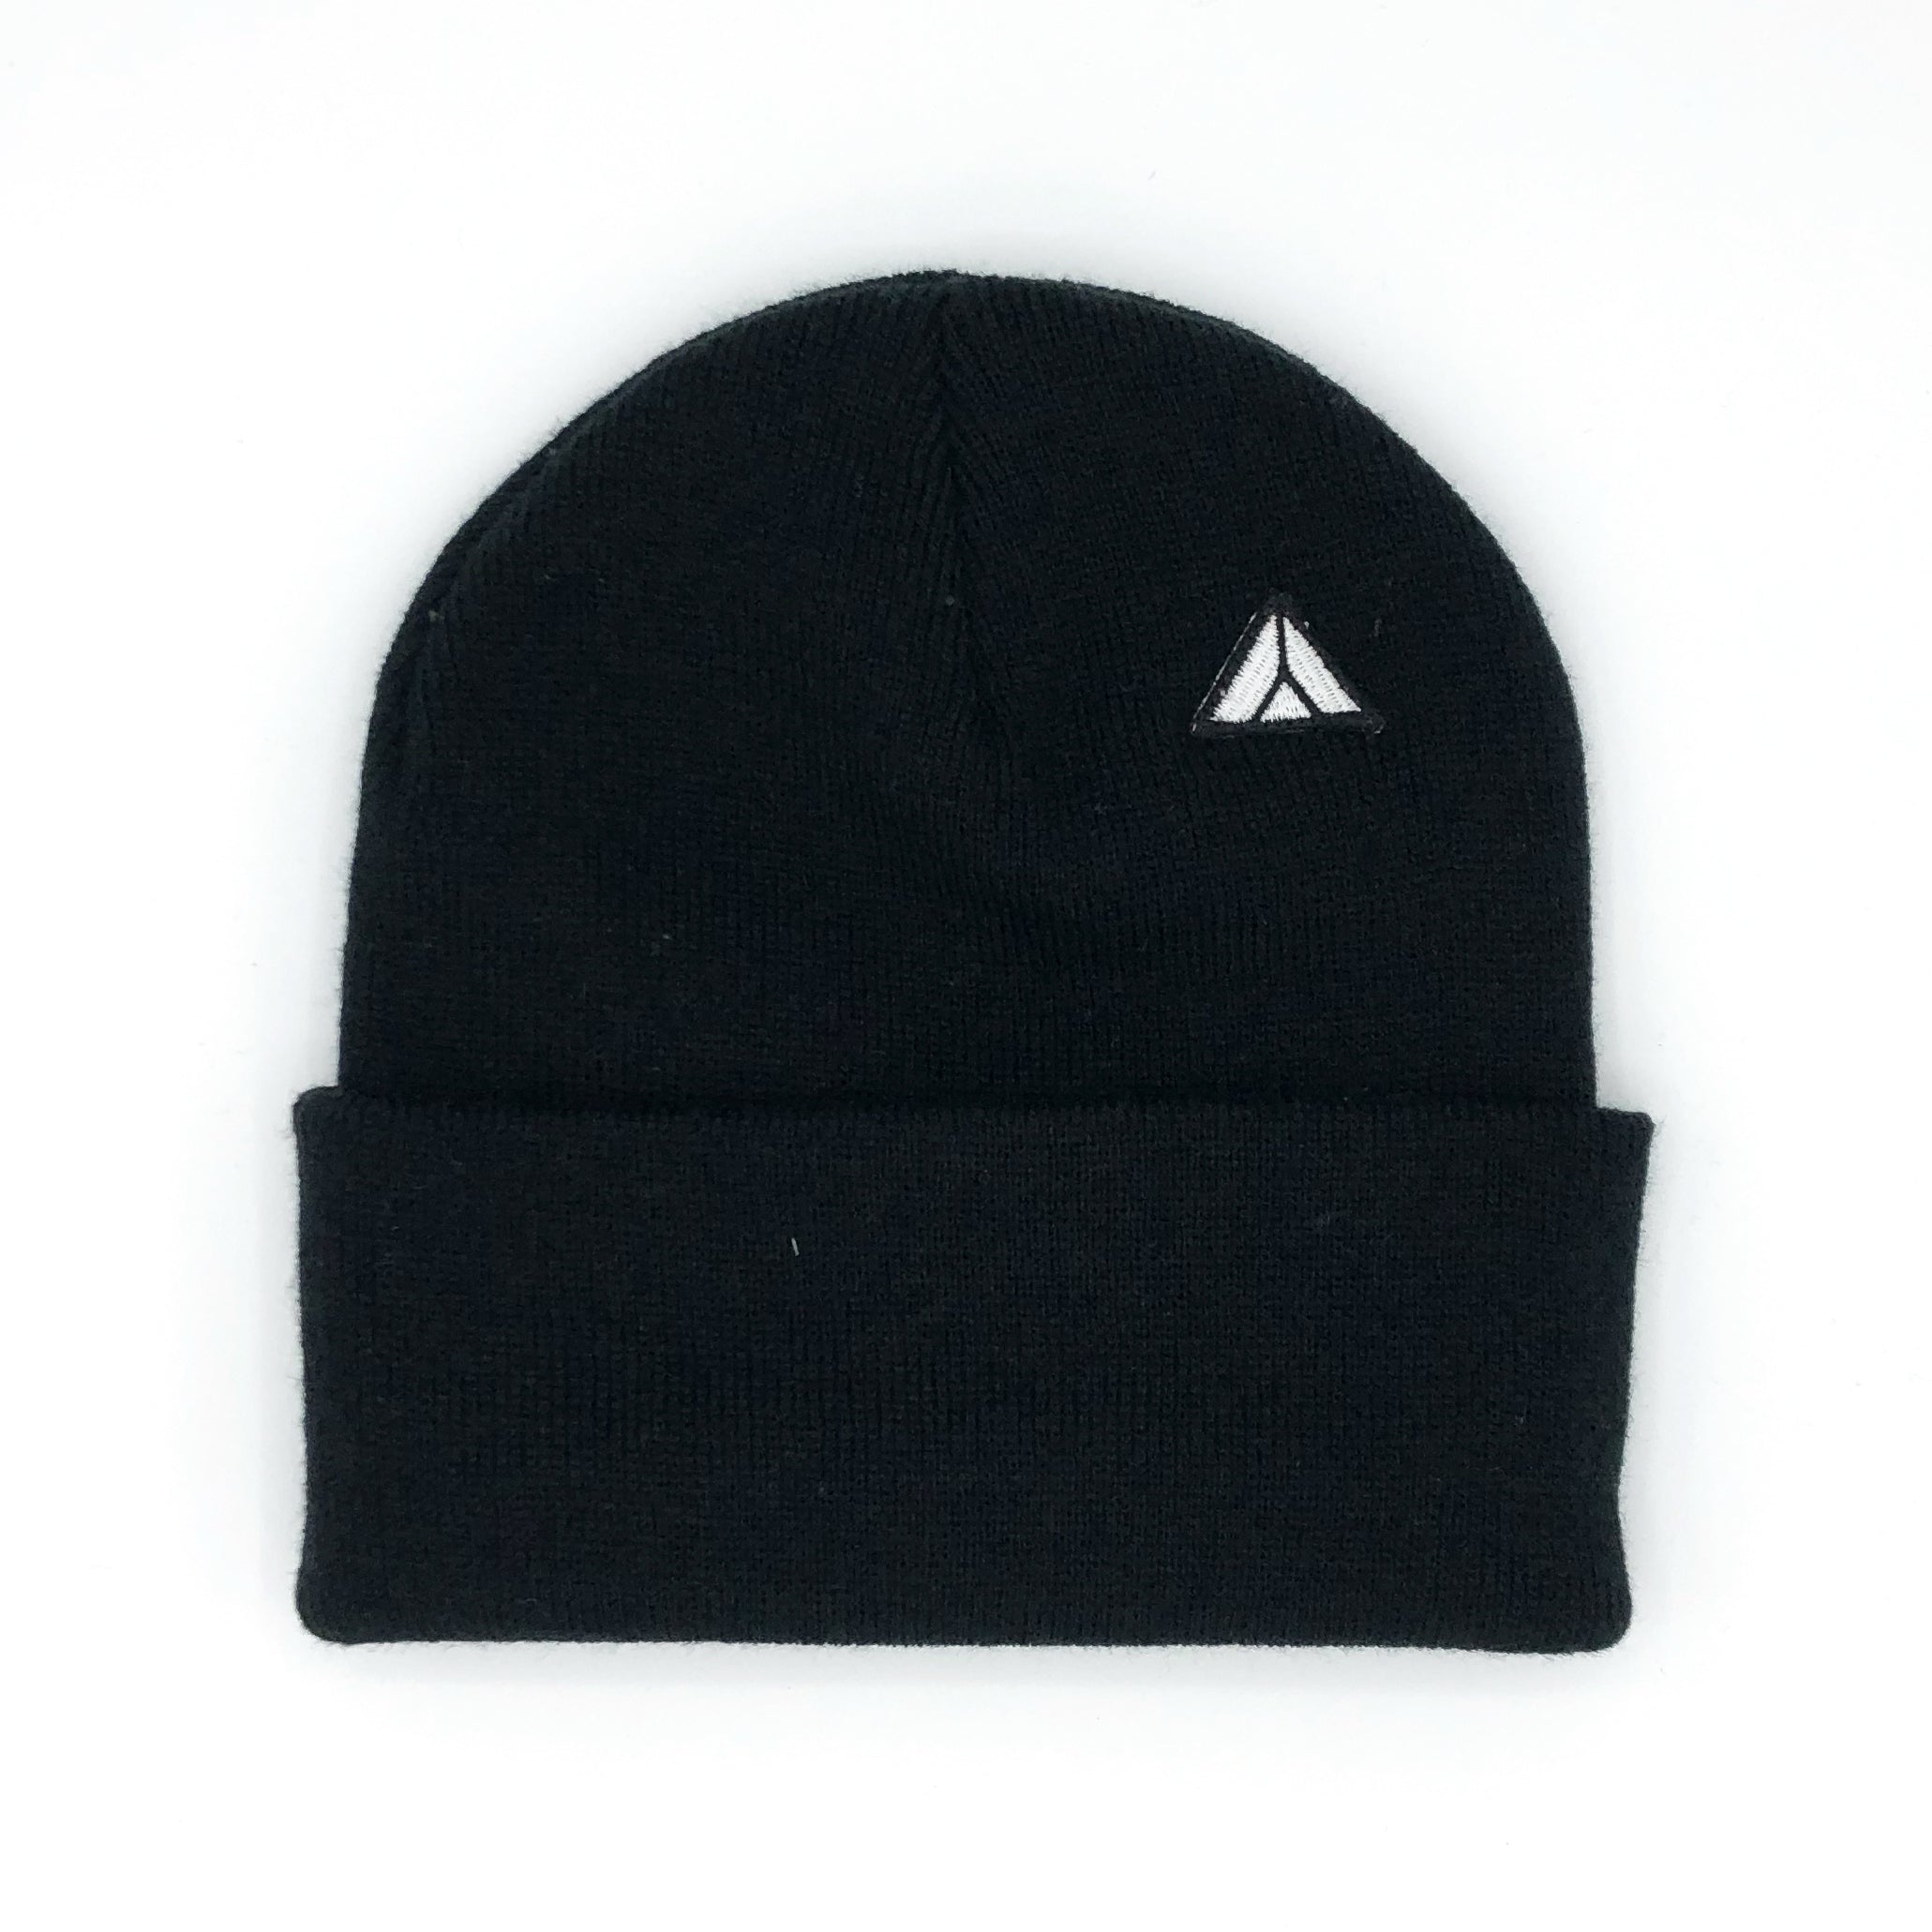 Triangle Cuffed Beanie Black